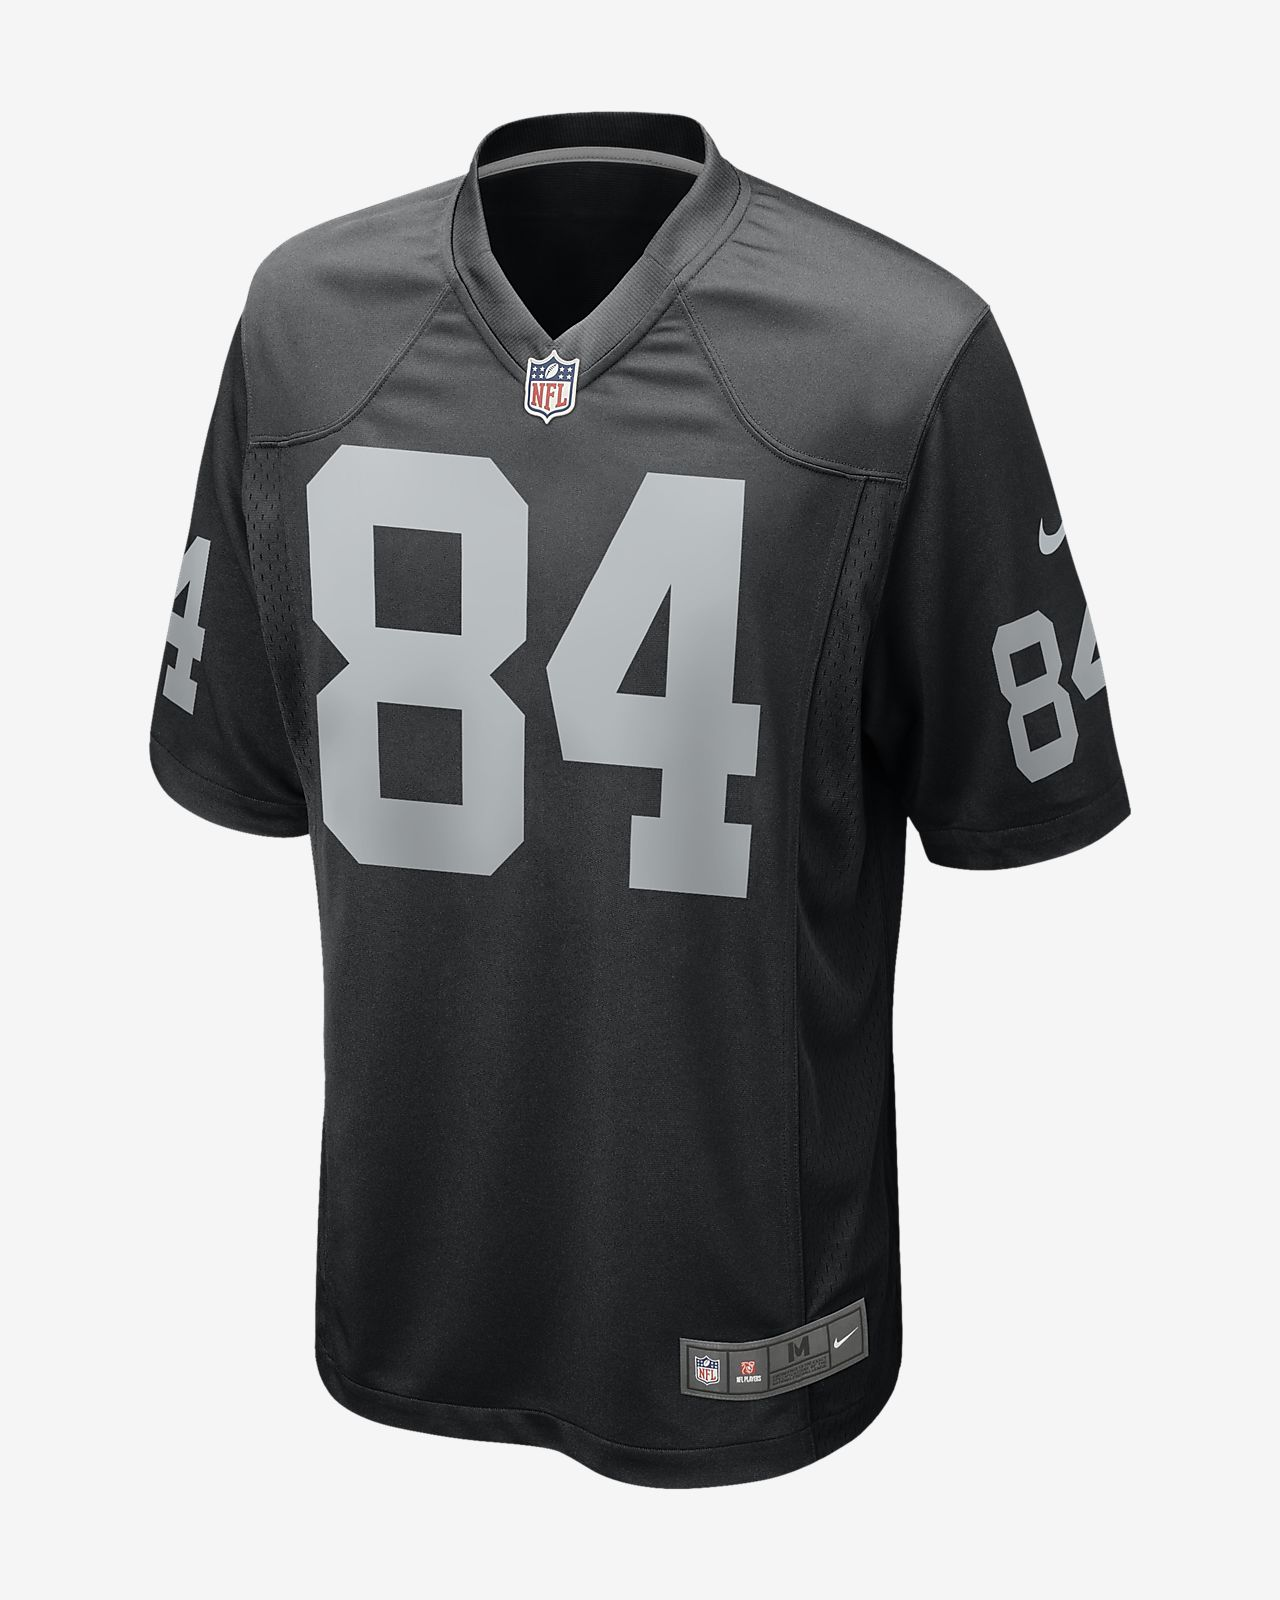 NFL Oakland Raiders (Antonio Brown) Men's Game American Football Jersey